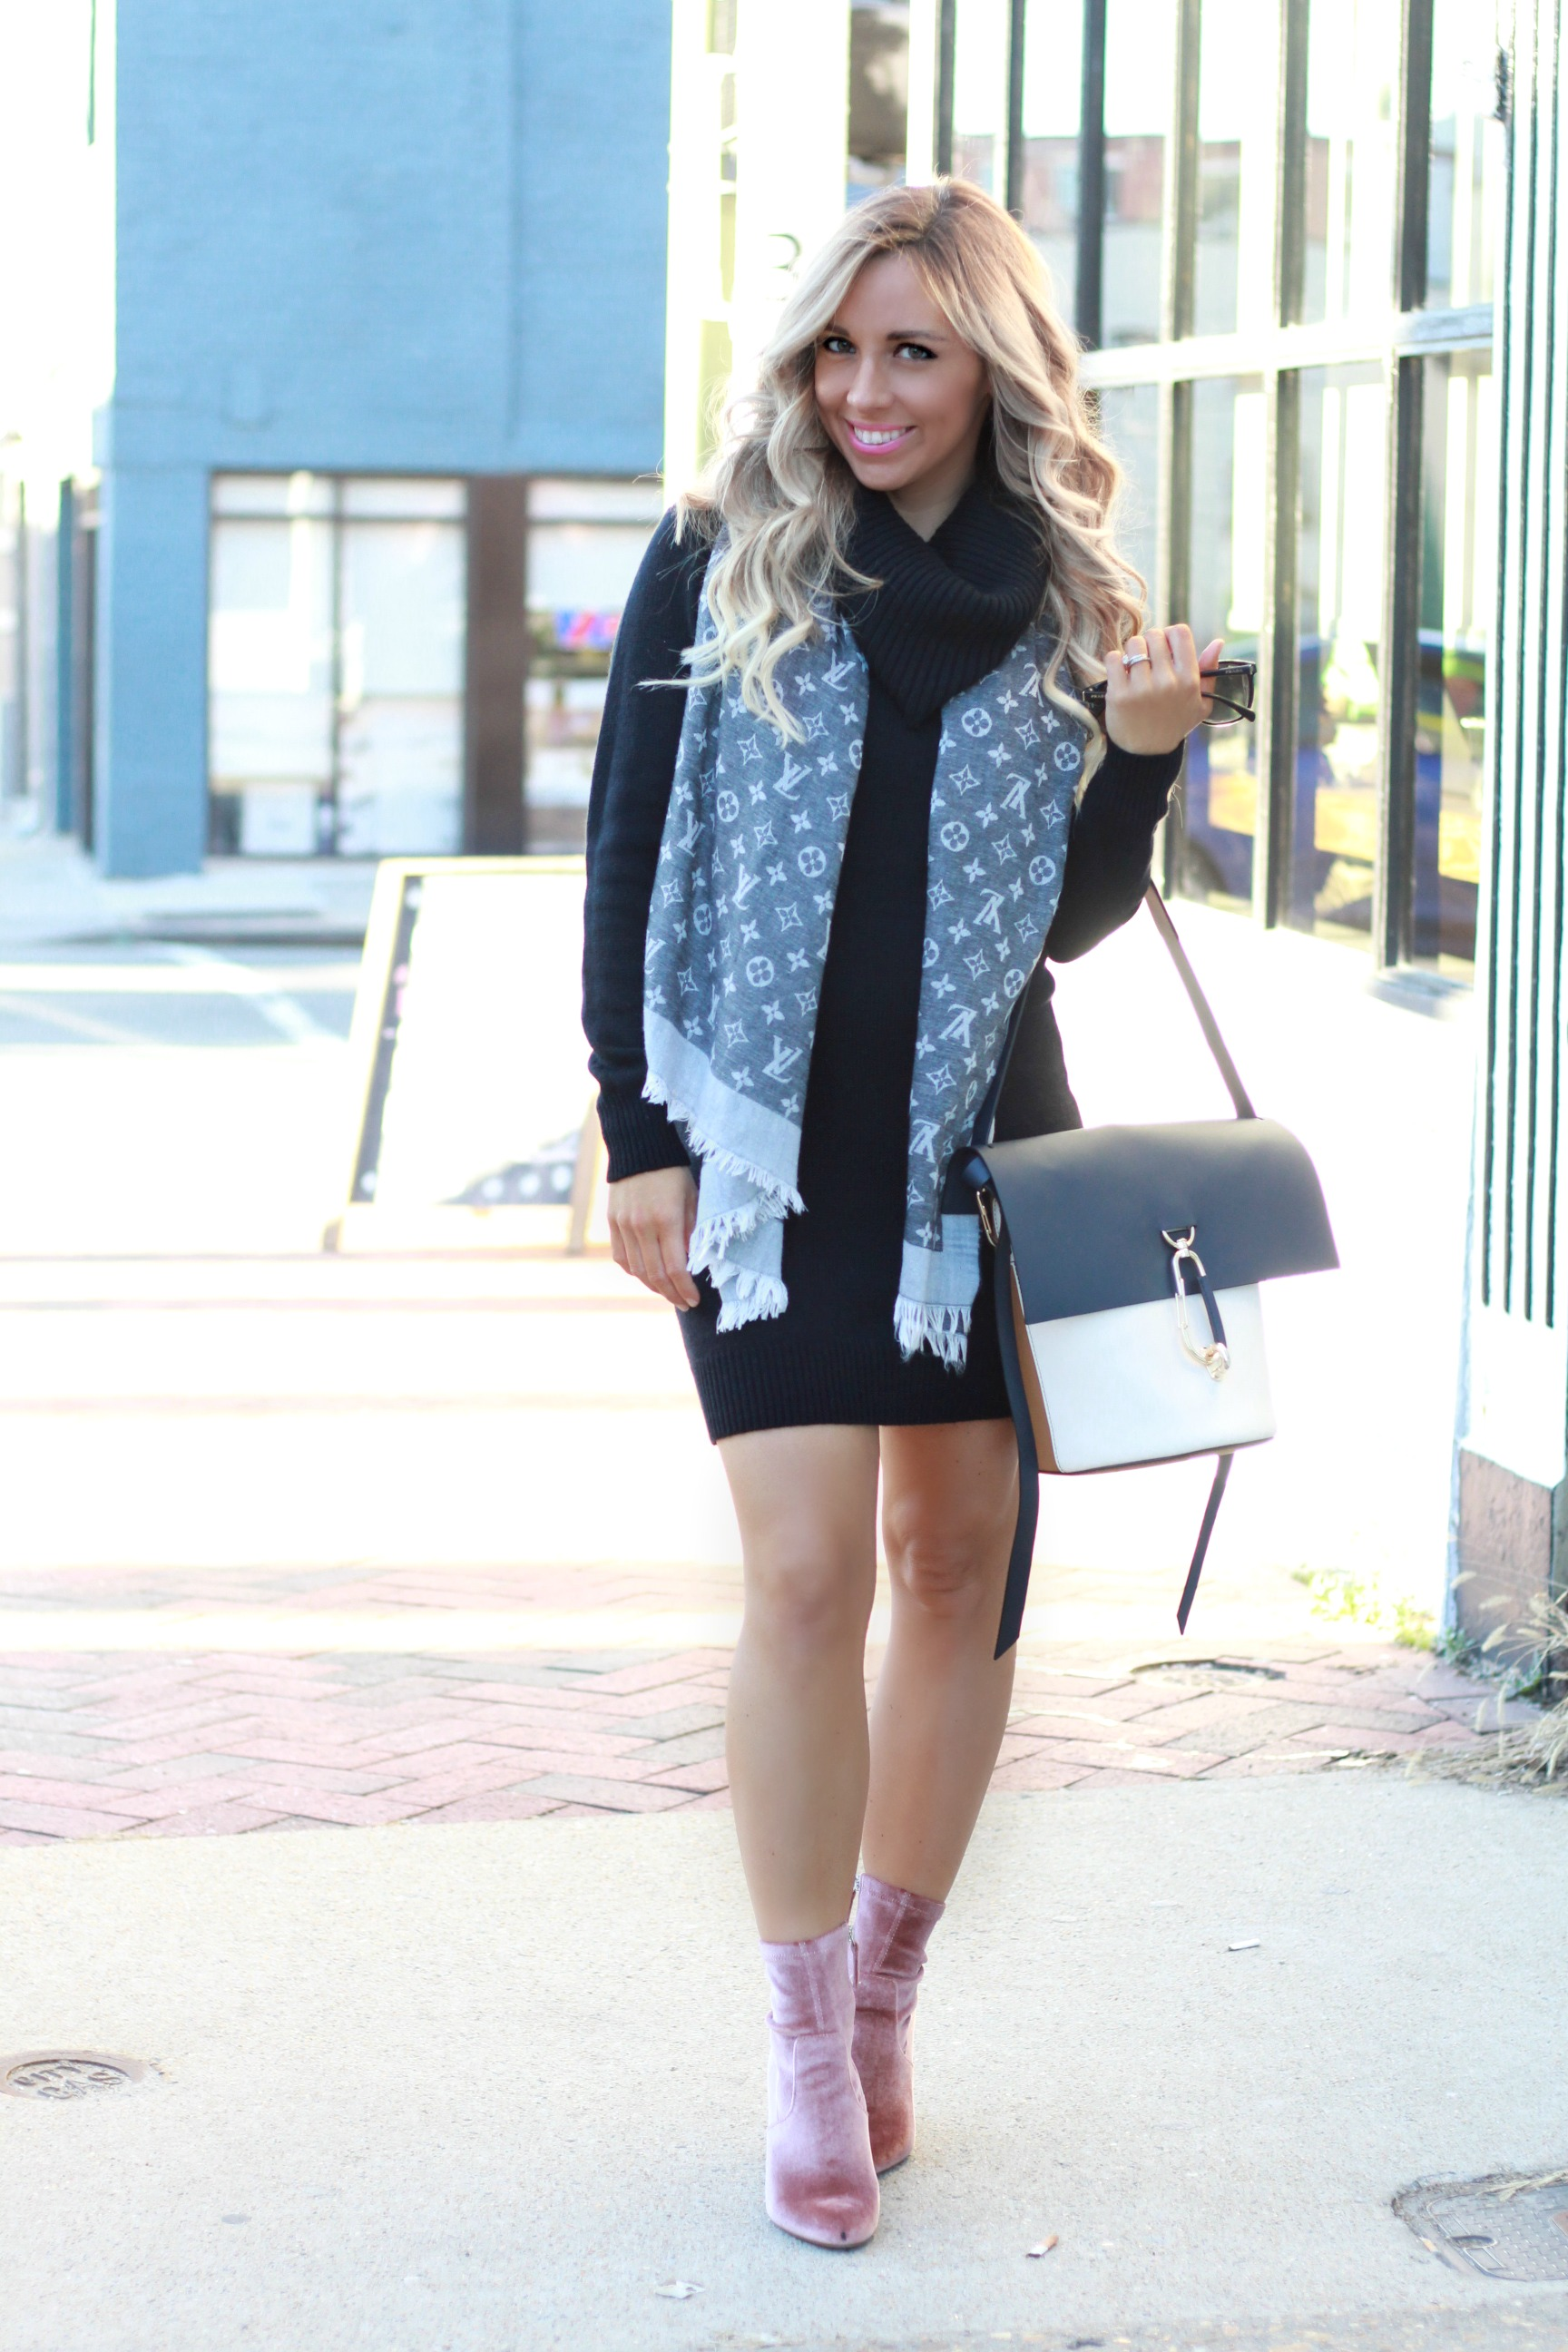 louis vuitton, spring scarf, zac posen, steve madden, turtleneck sweater dress, pregnancy style, dress the bump, richmond virginia, southern bloggers, southern girl, southern style, bellami hair extensions, louis vuitton scarf, spring scarf, blush, velvet booties, maternity style, pregnancy outfits